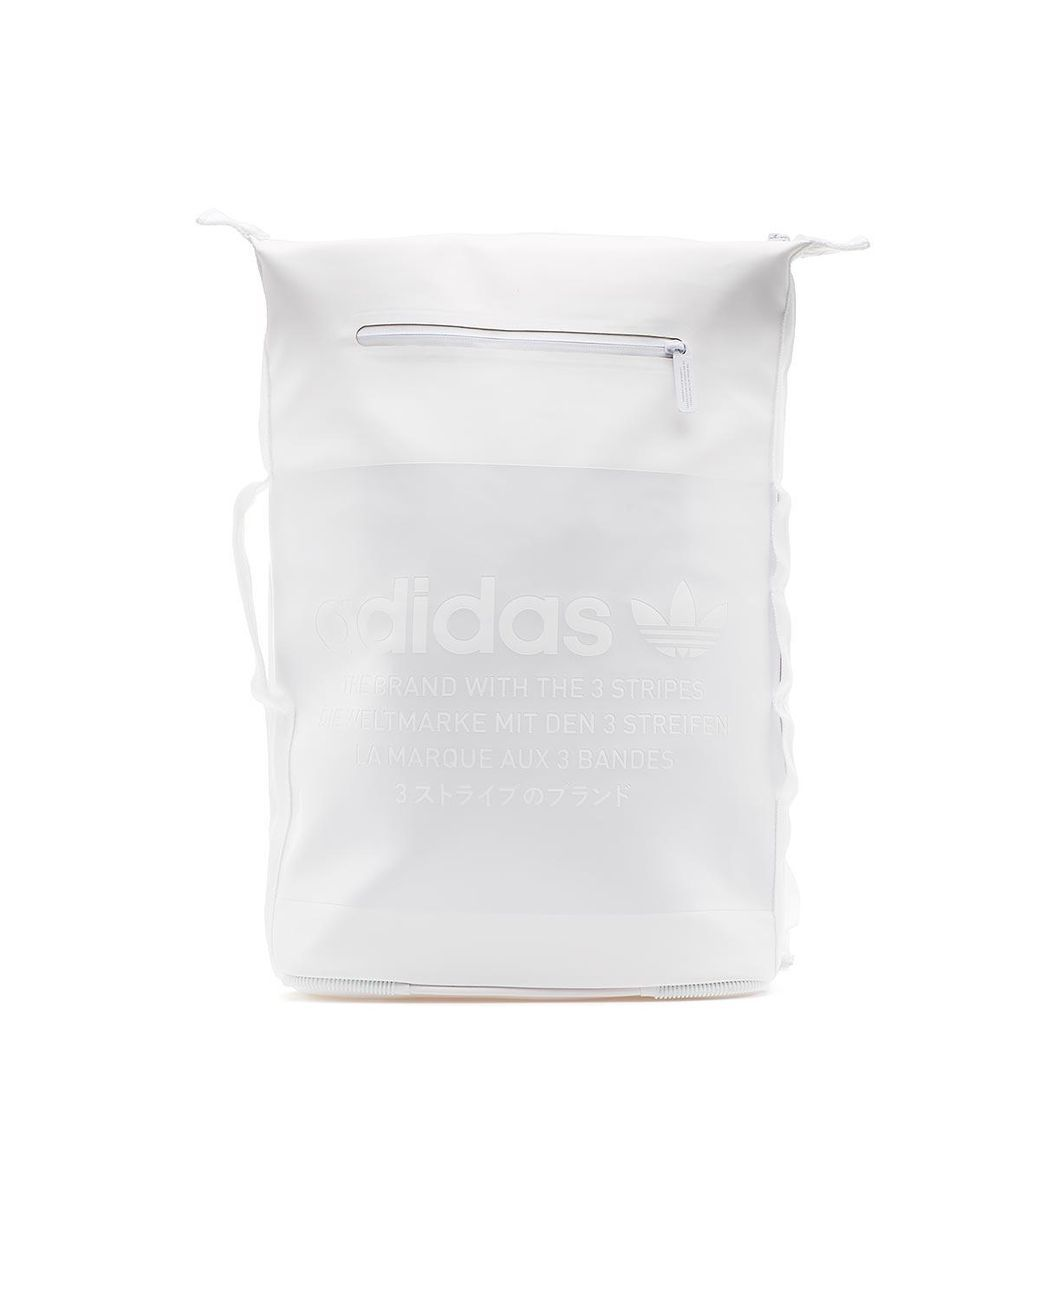 01707a6c1 Men s White Nmd Backpack Day